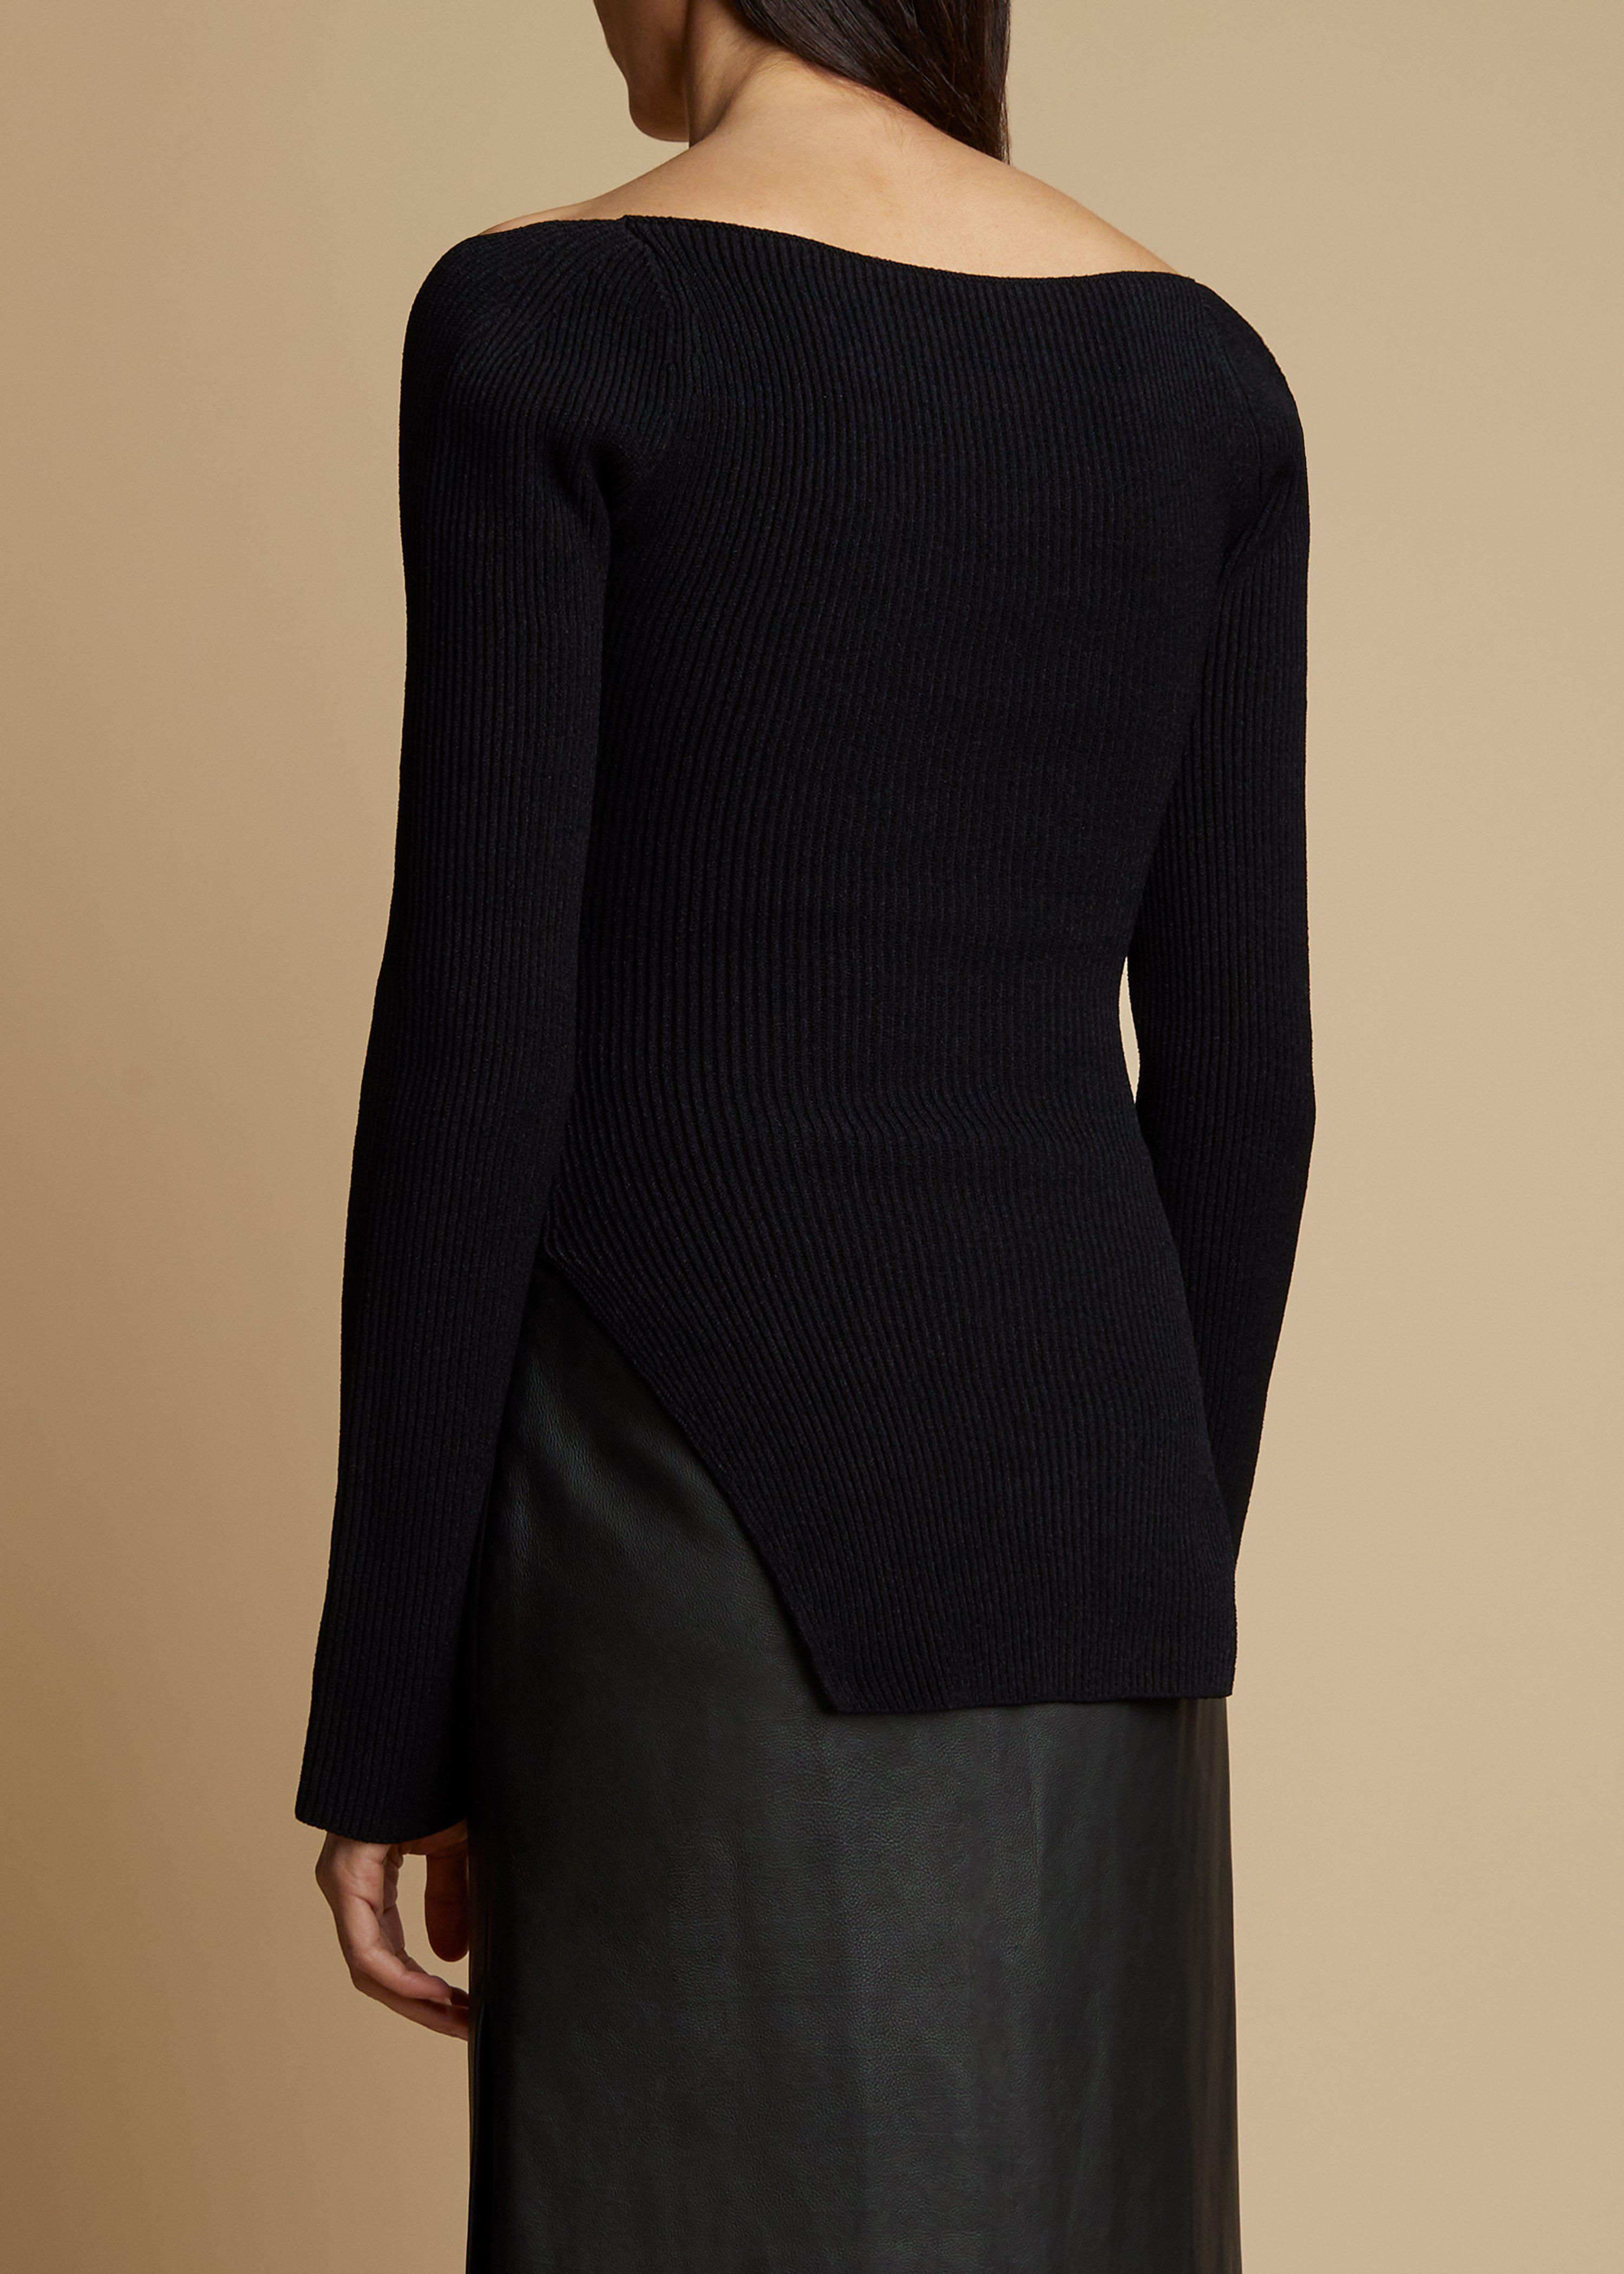 The Maddy Top in Black 3